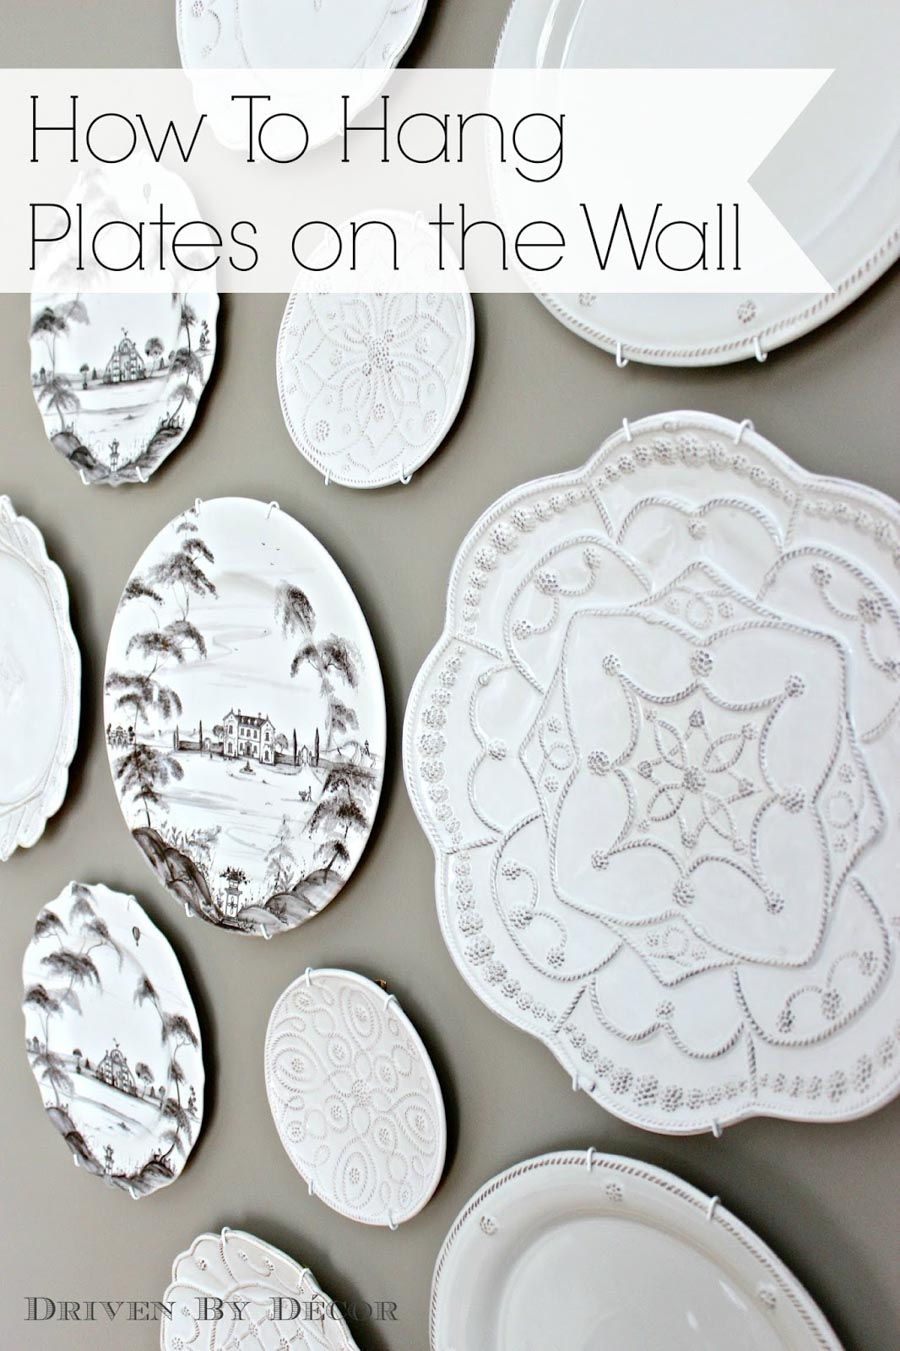 How to hang plates on a wall (so they stay up for good!)